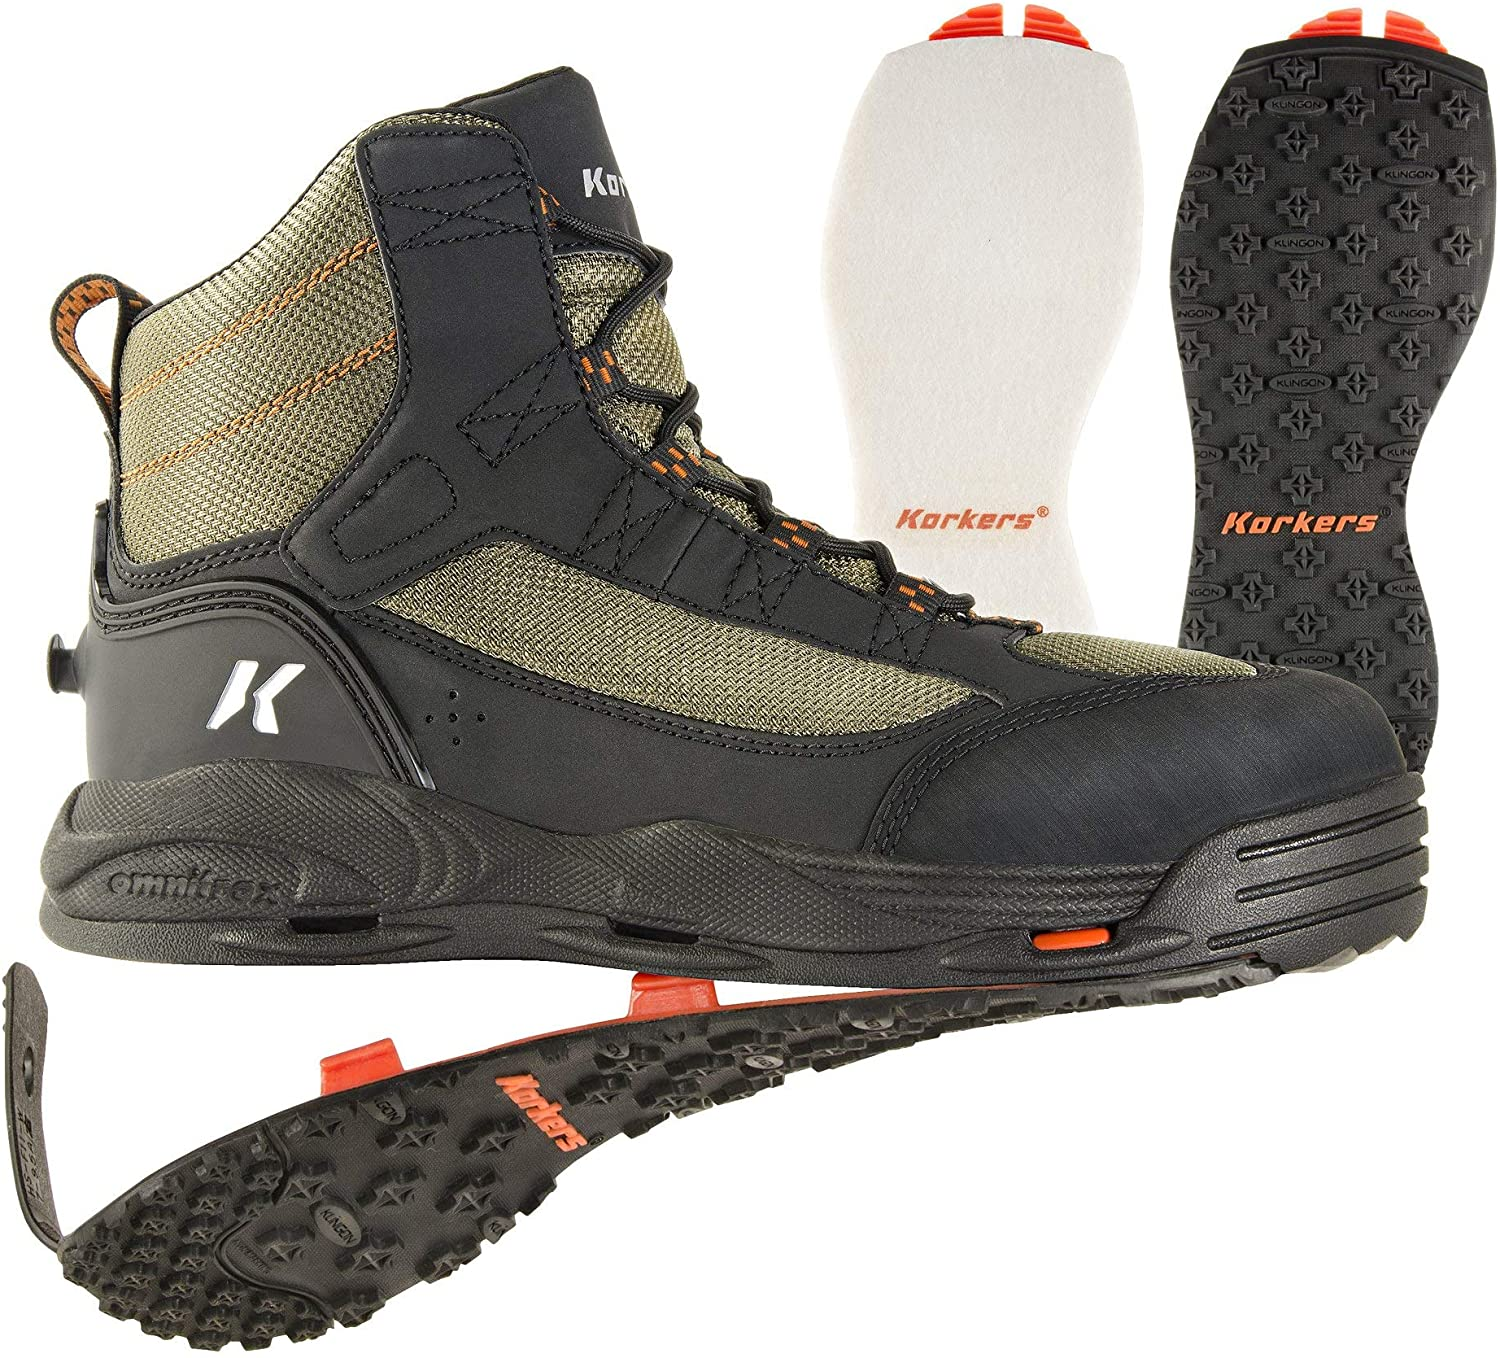 Korkers wading boots - Best Slippery Rocks Wading Boots